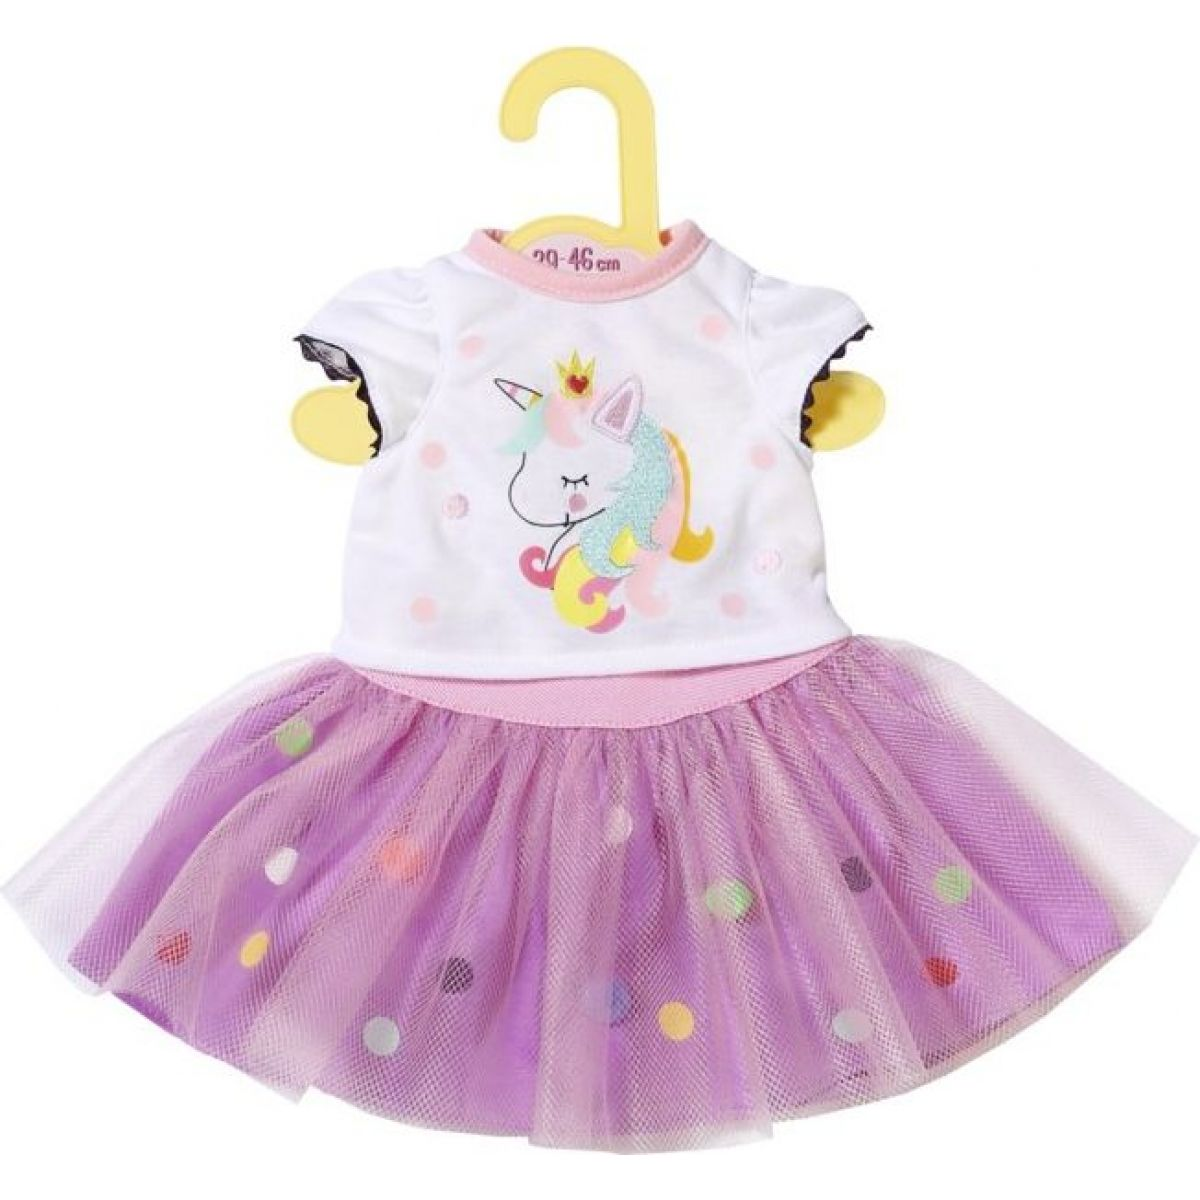 Zapf Creation Dolly Moda Tričko s tutu sukýnkou, 43cm